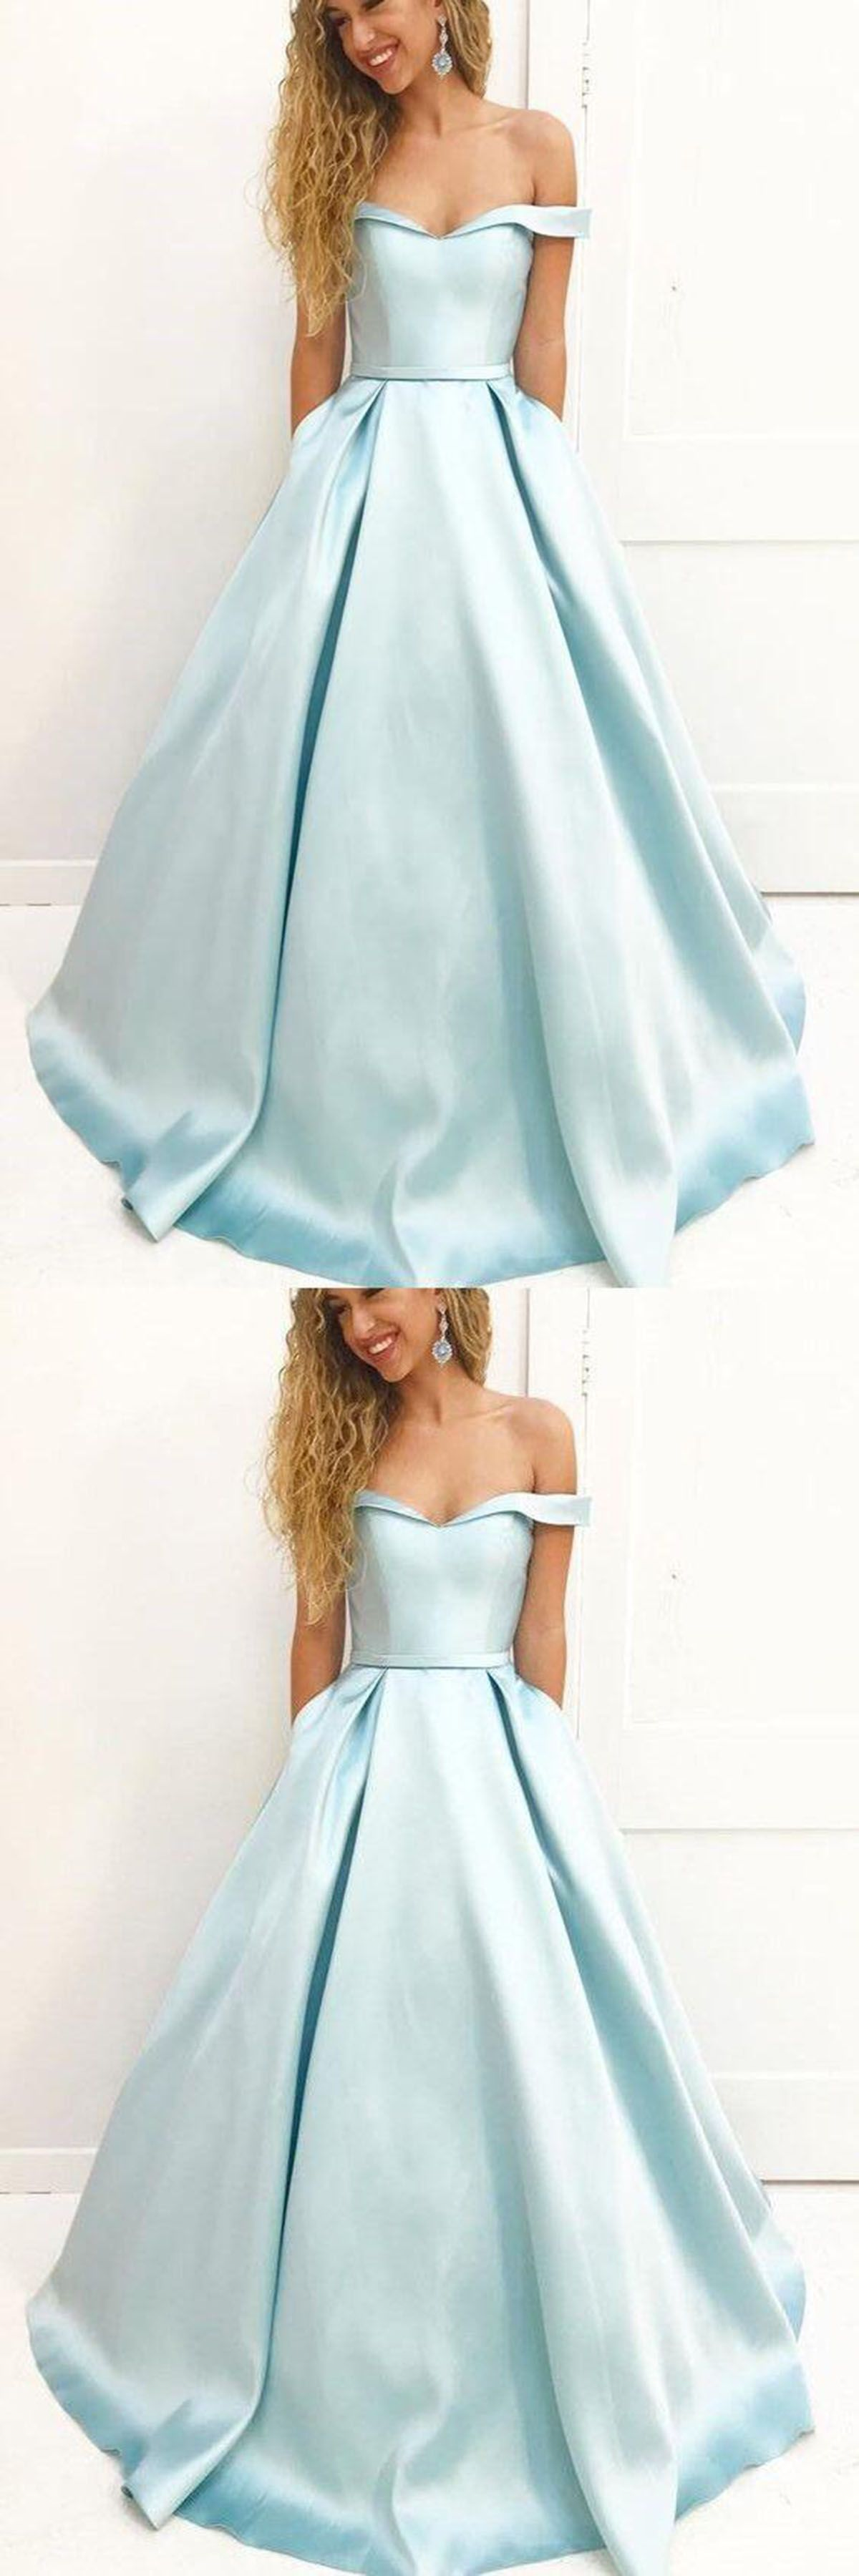 Off shoulder prom dress elegant light blue satin long evening gown